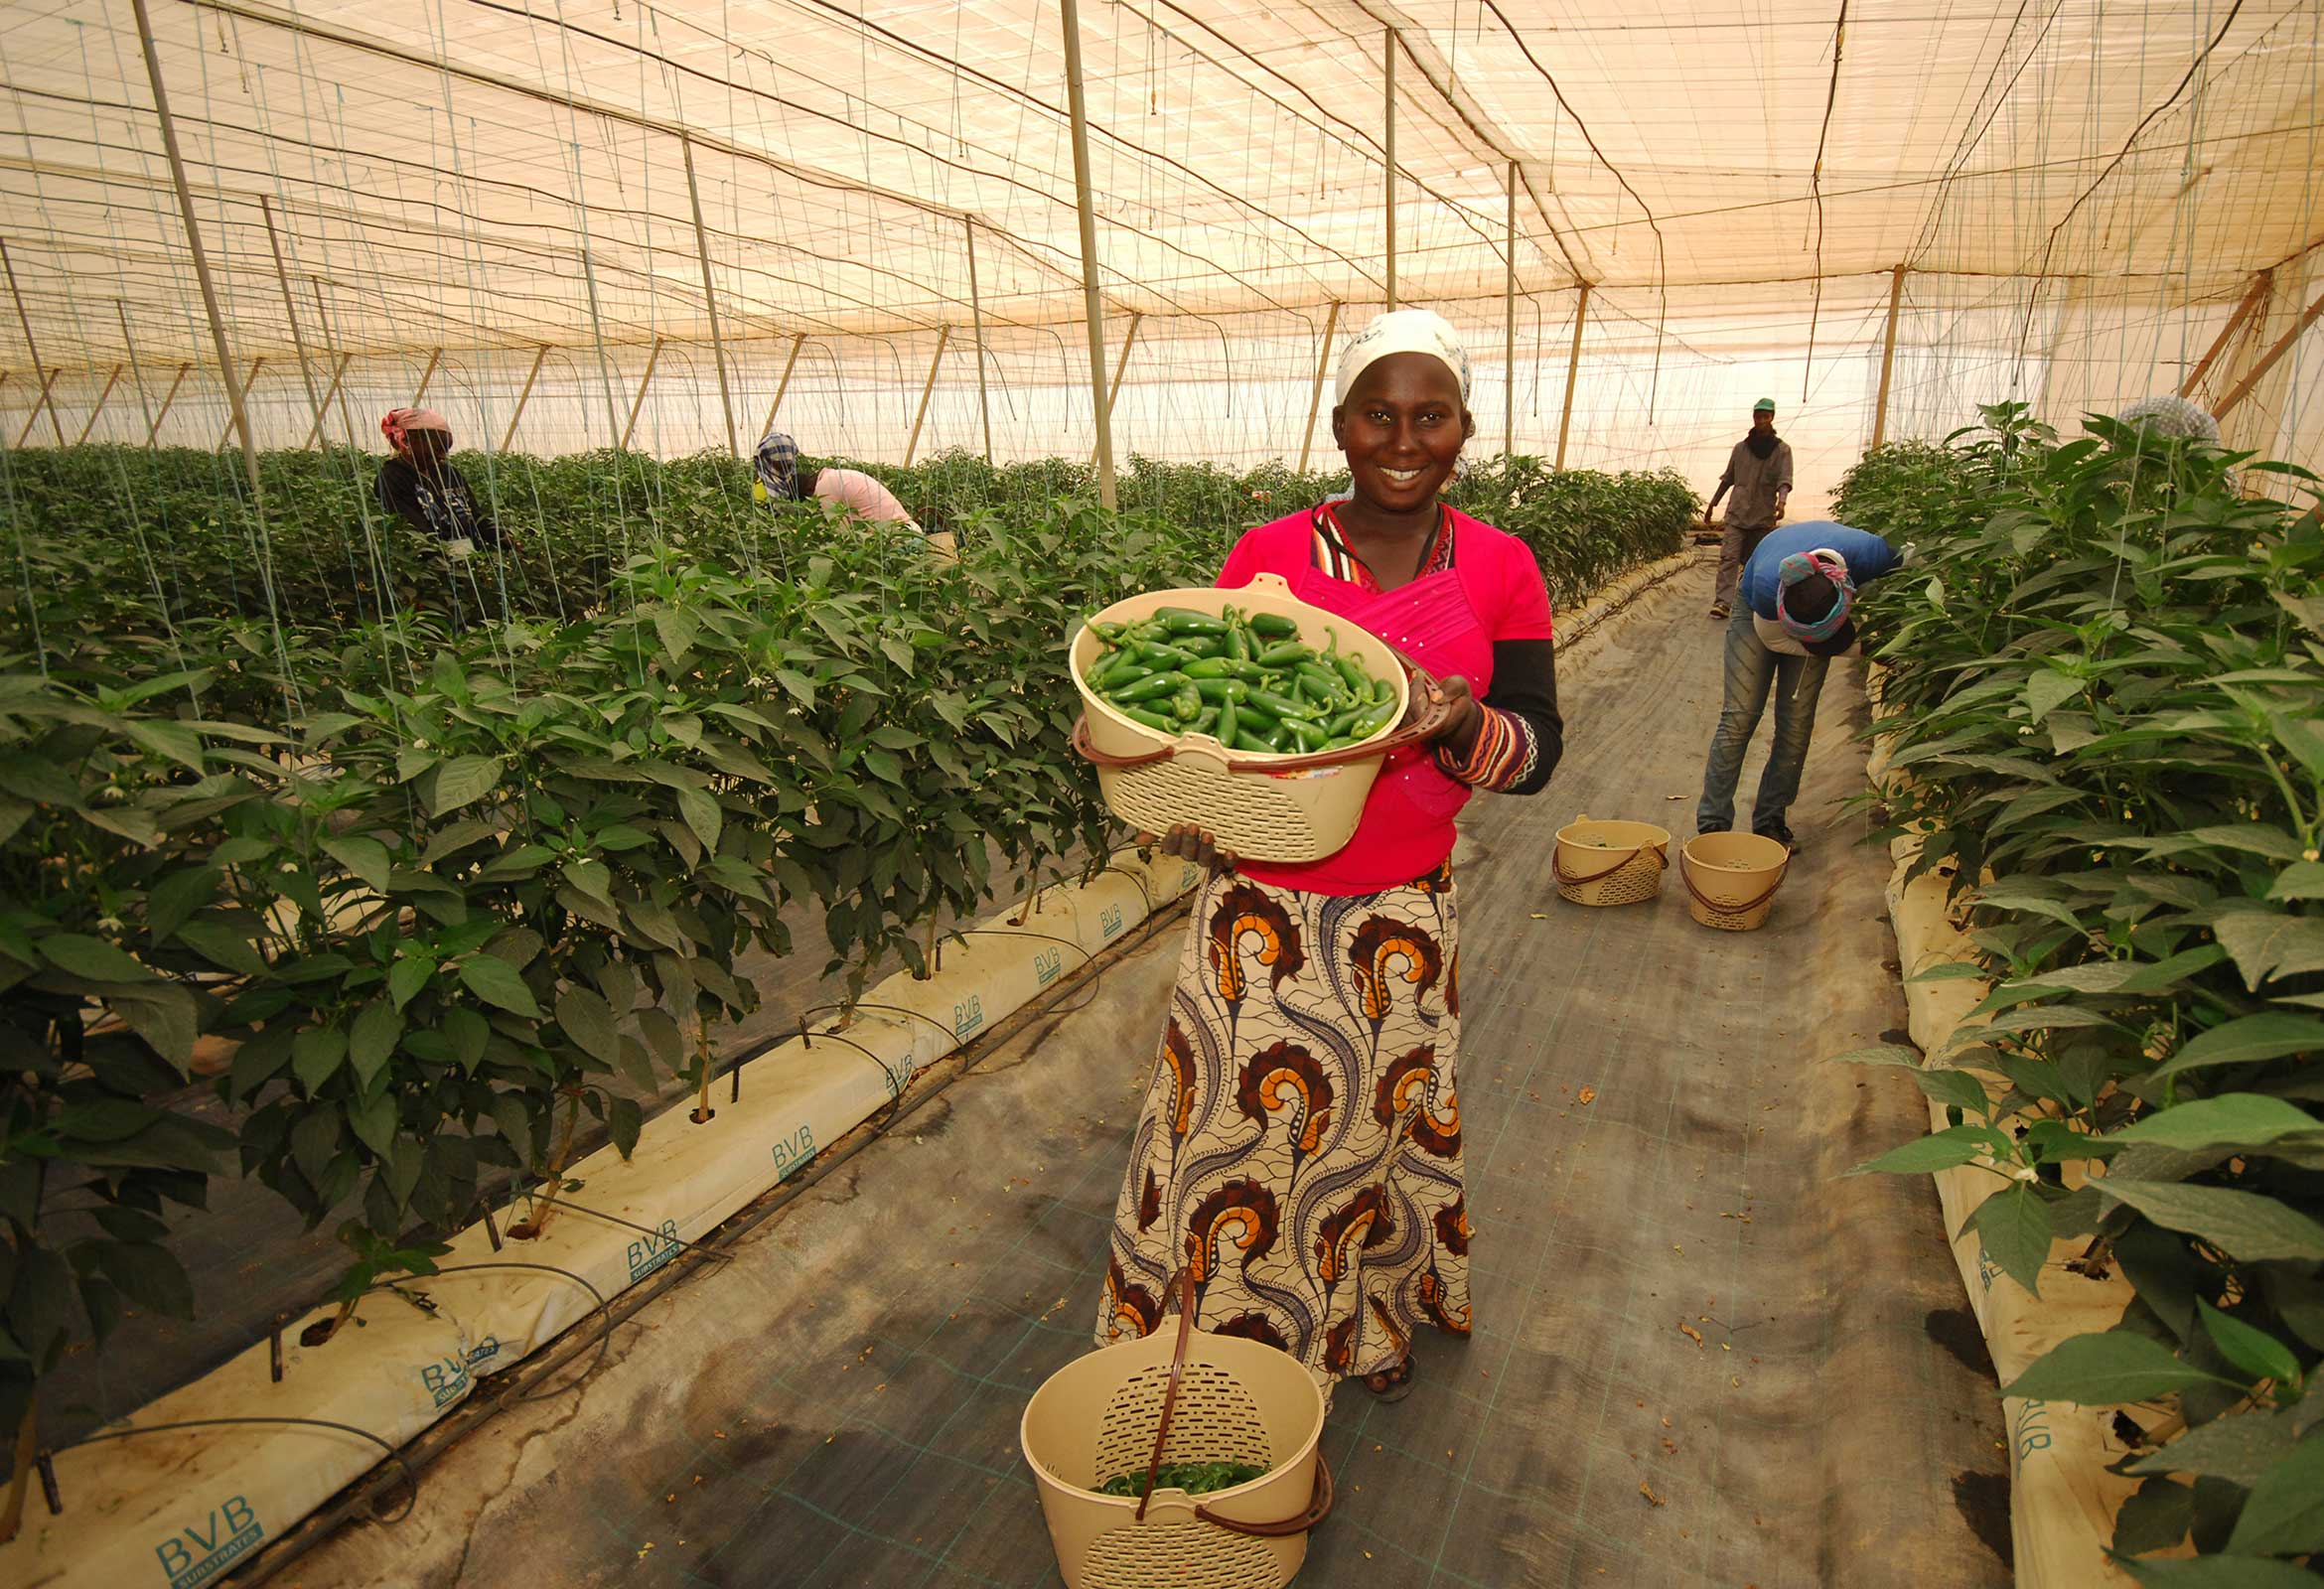 Photograph of a Senegalese woman harvesting chillies on the Barfoots SCL farm in Senegal